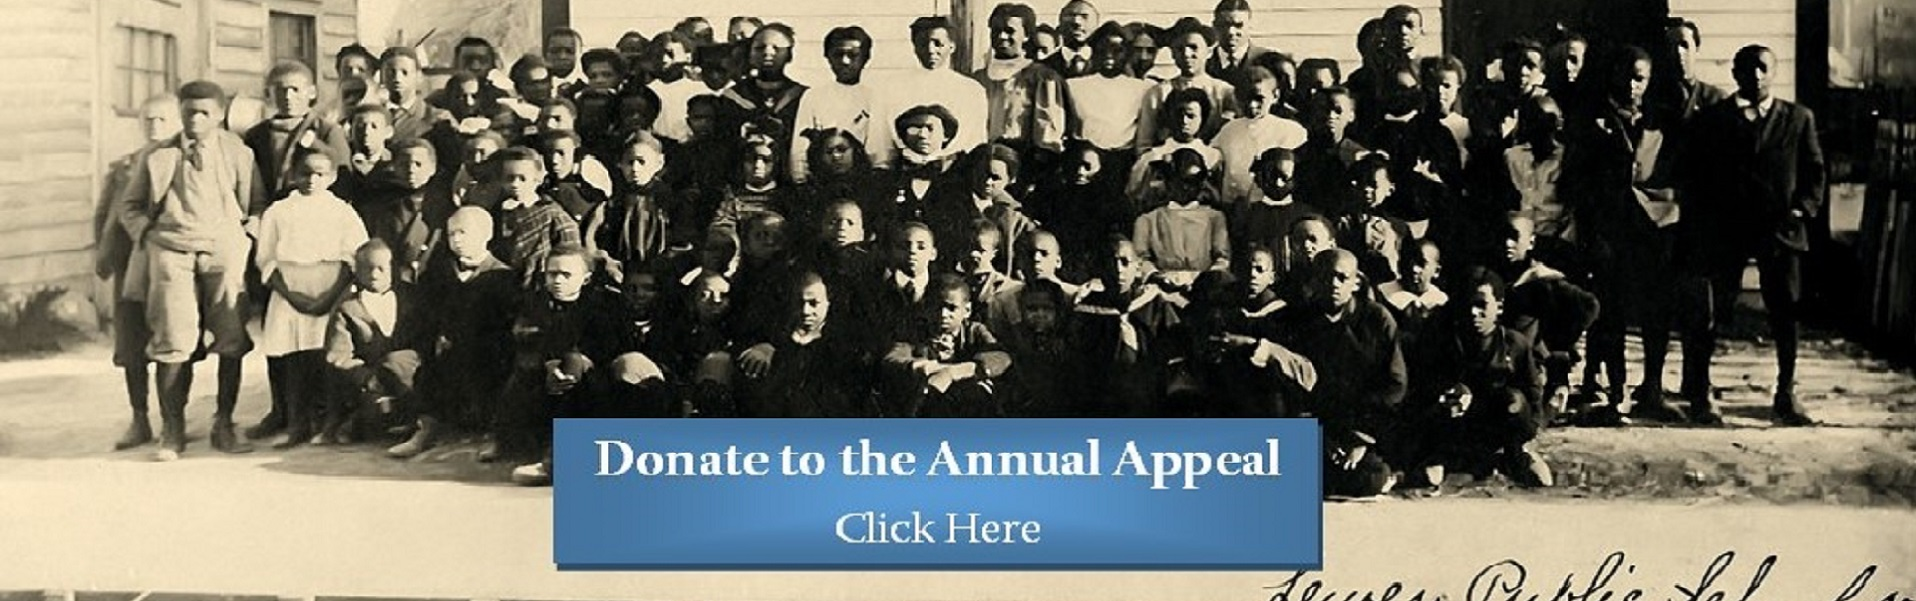 Please Make a Donation to Our Annual Appeal